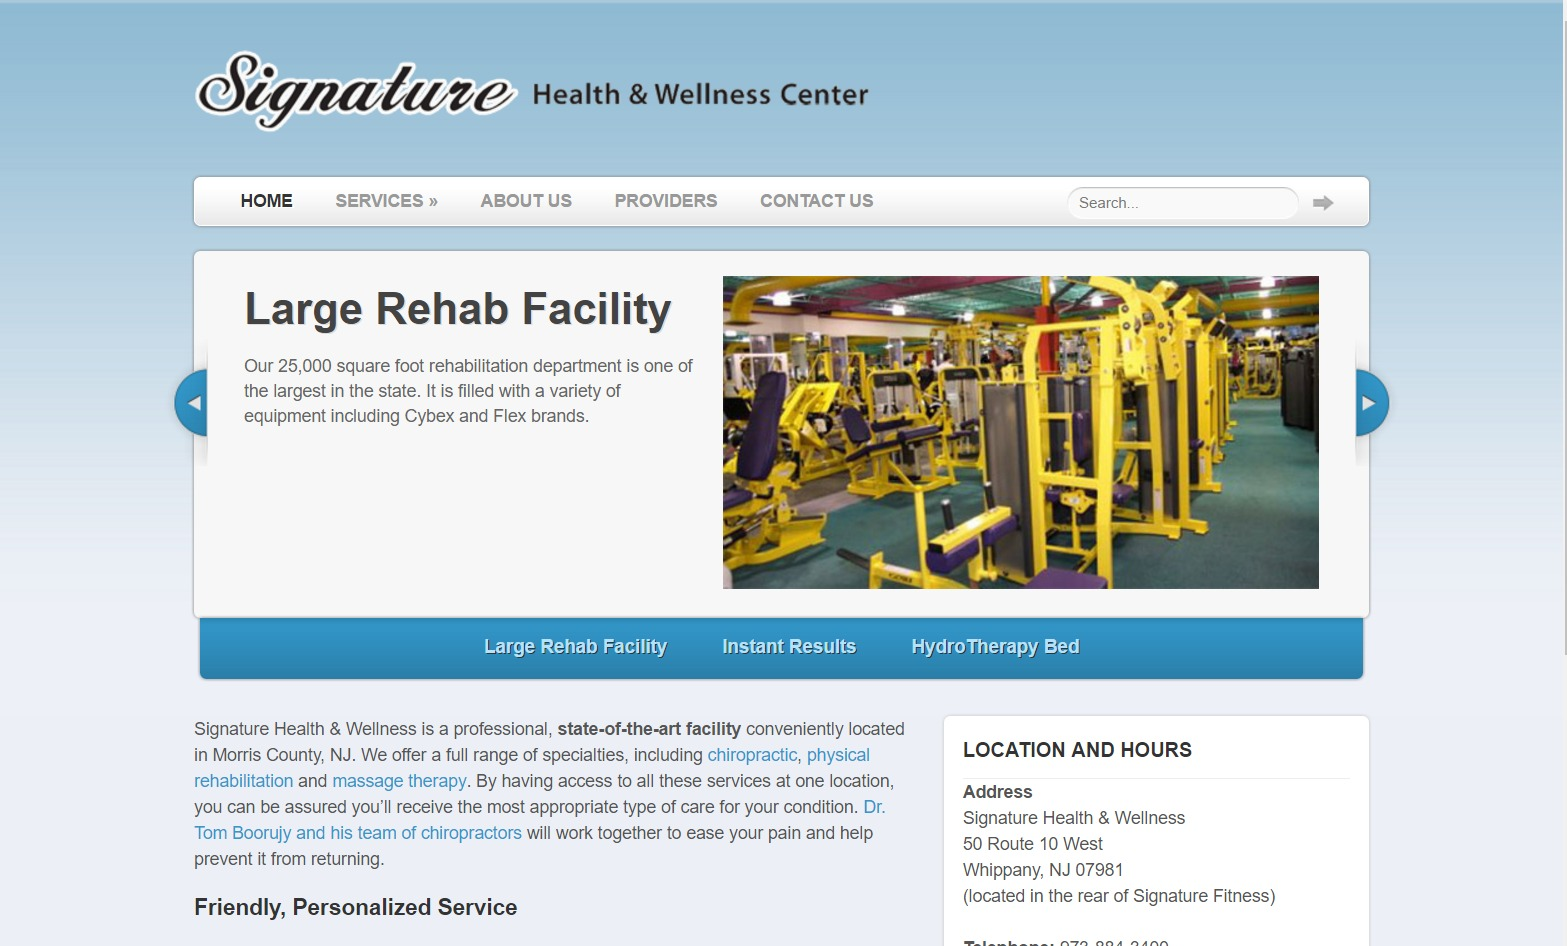 Signature Health & Wellness (Whippany, NJ) Web Design Project